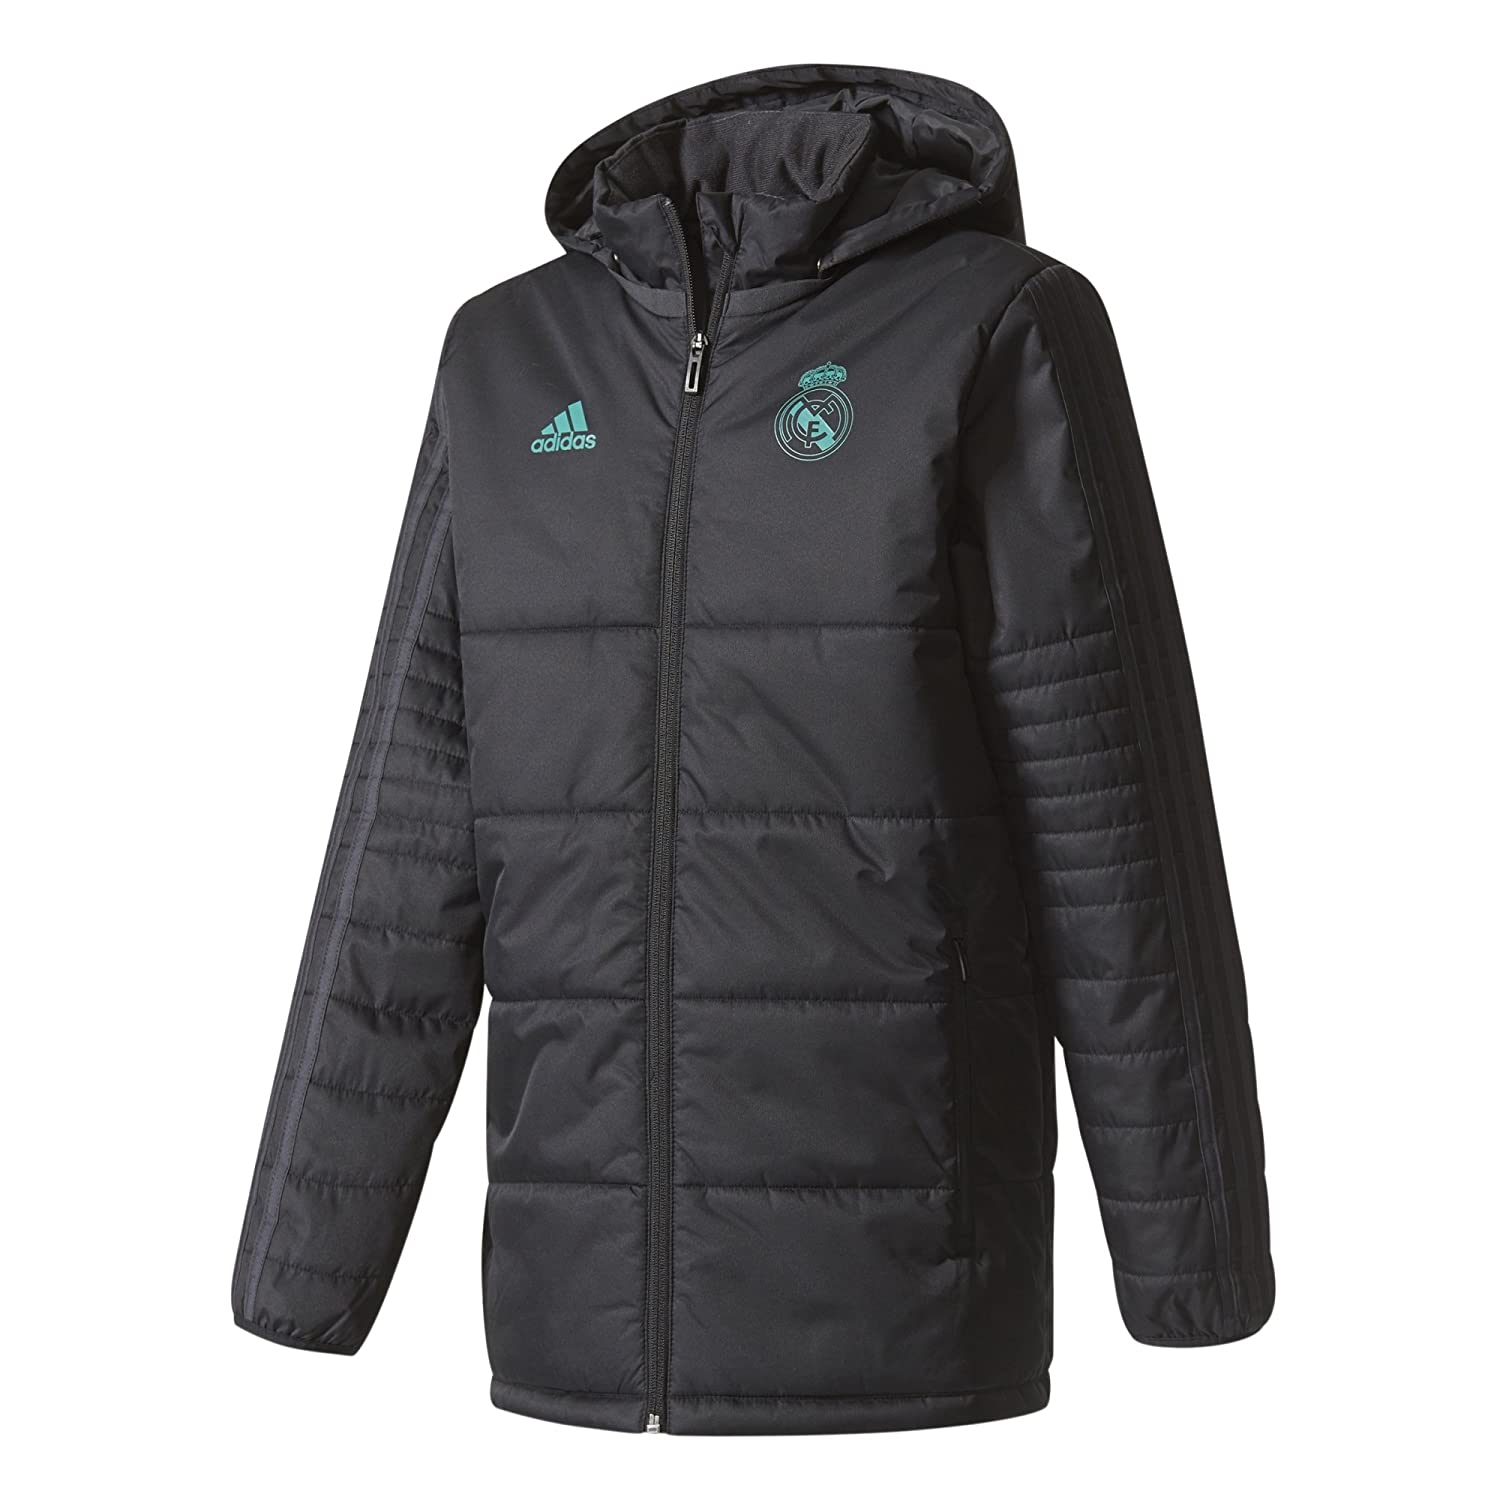 2adb5a3d43ed Top1  2017-2018 Real Madrid Adidas Padded Winter Jacket (Black) - Kids